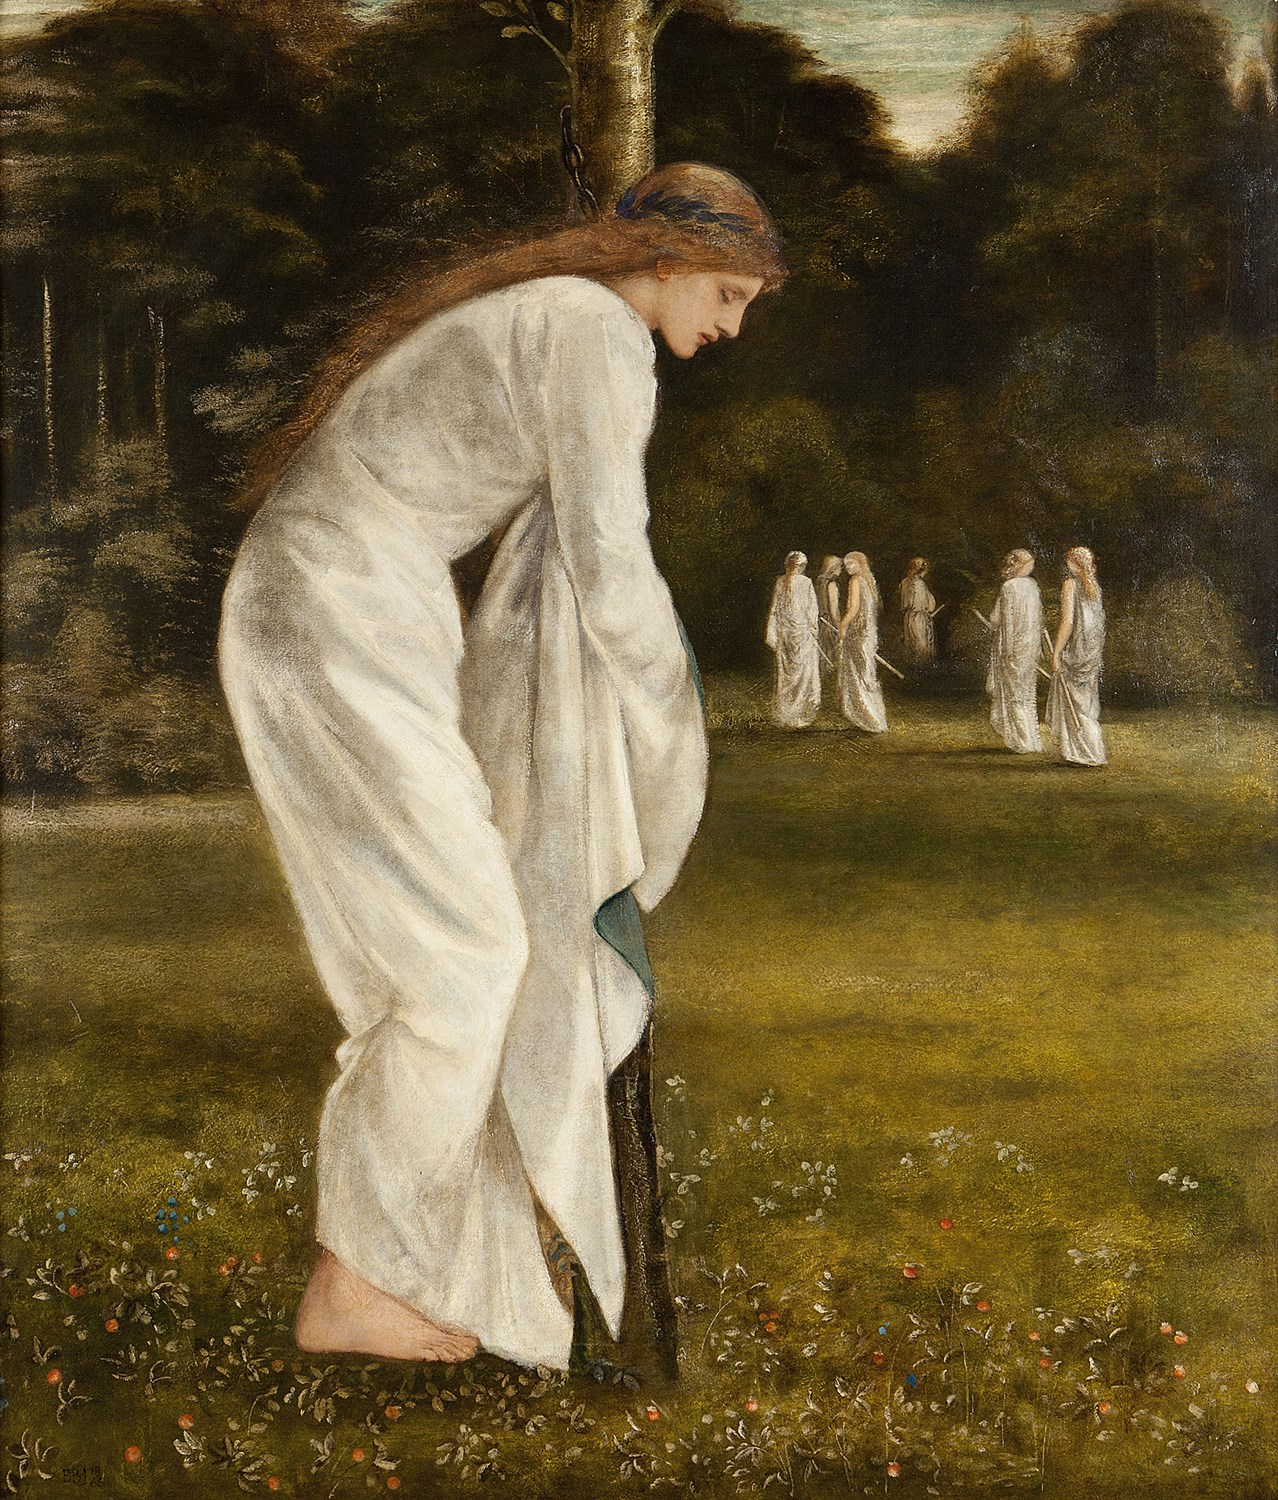 65 - SIR EDWARD COLEY BURNE-JONES B.T., A.R.A. (BRITISH 1833-1898)